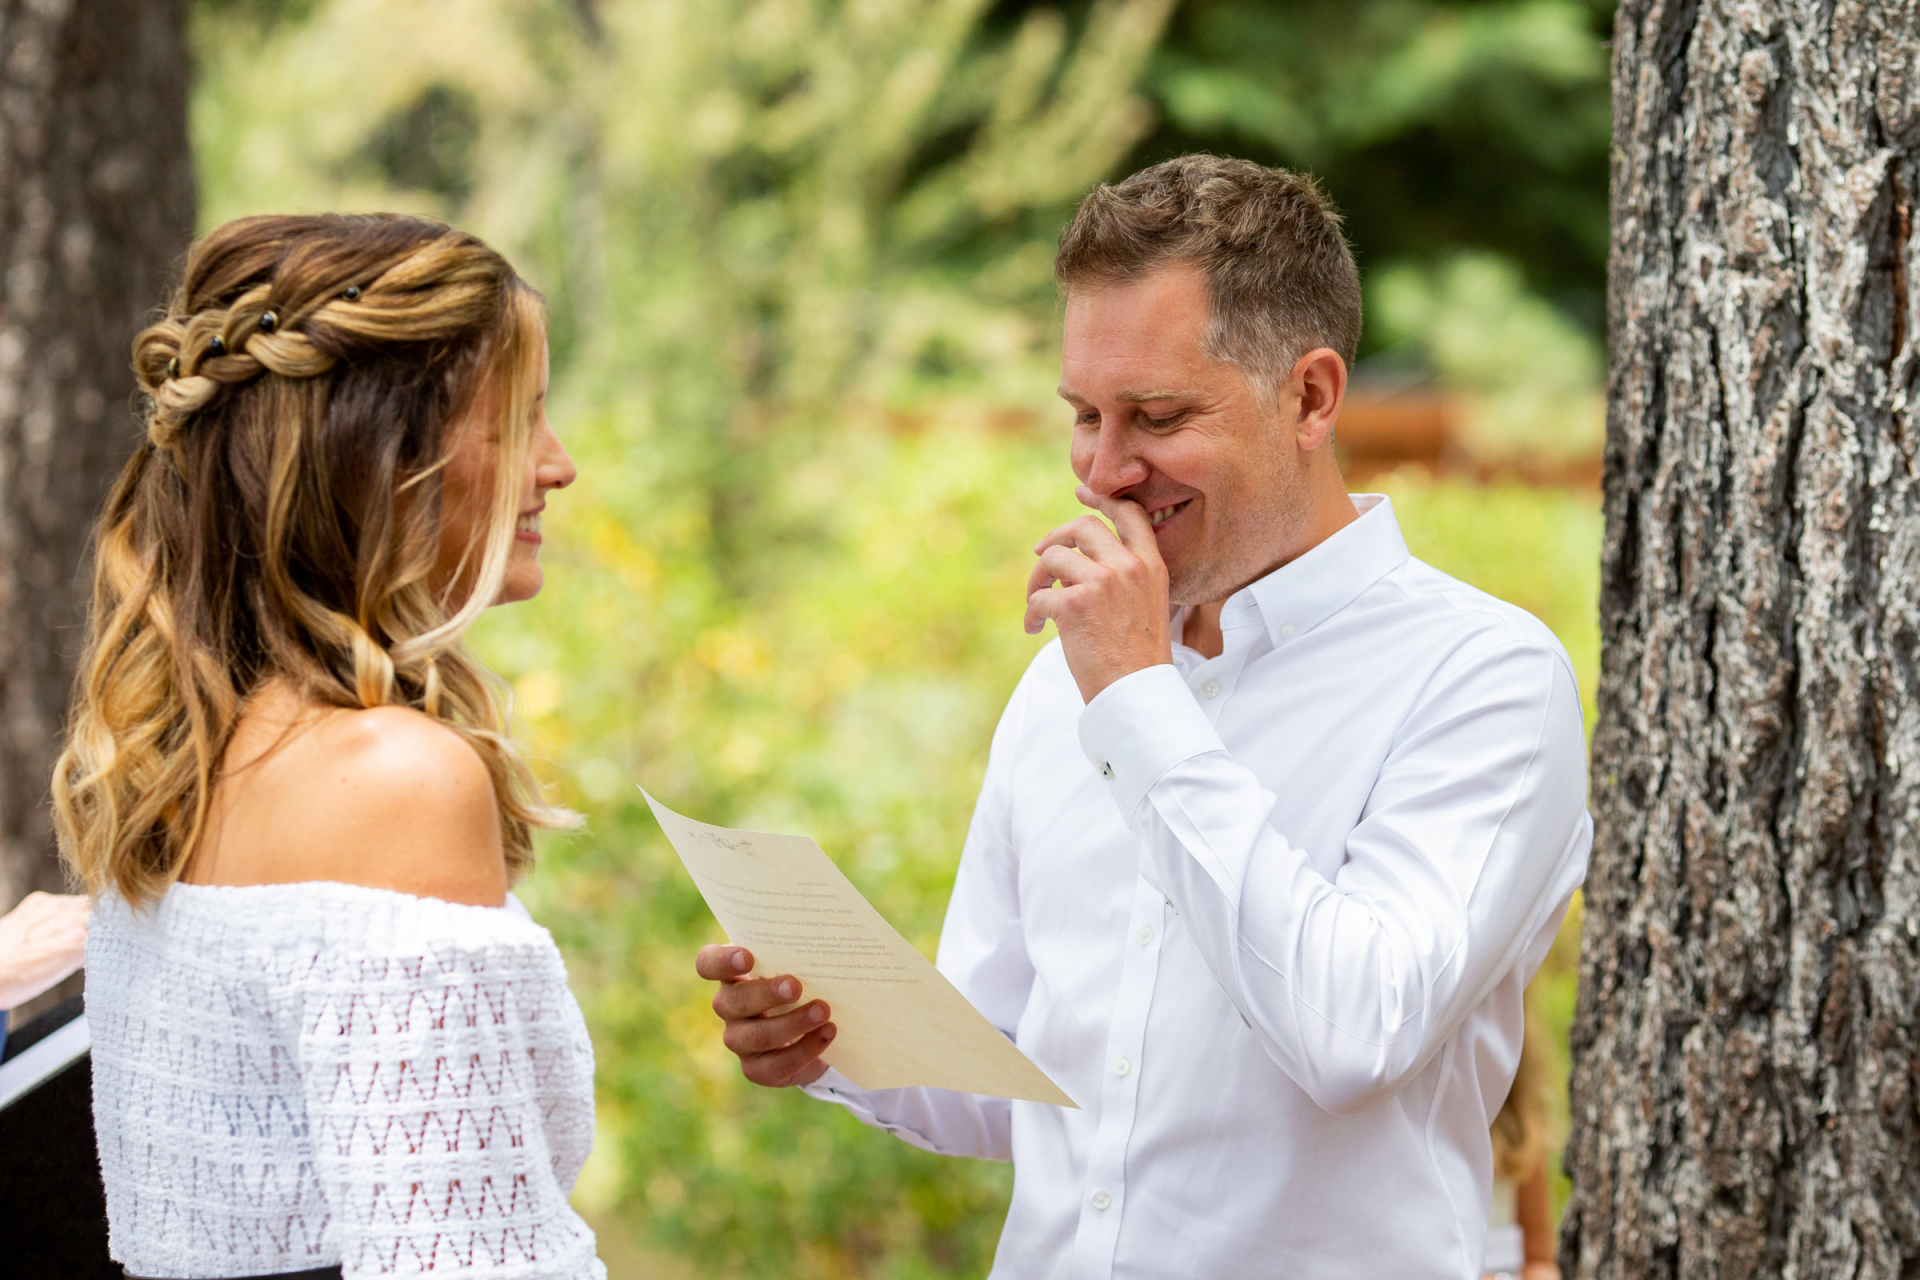 Outdoor Wedding Ceremony Image -  Skylandia Park Lake Tahoe   A funny moment happens between the bride and groom